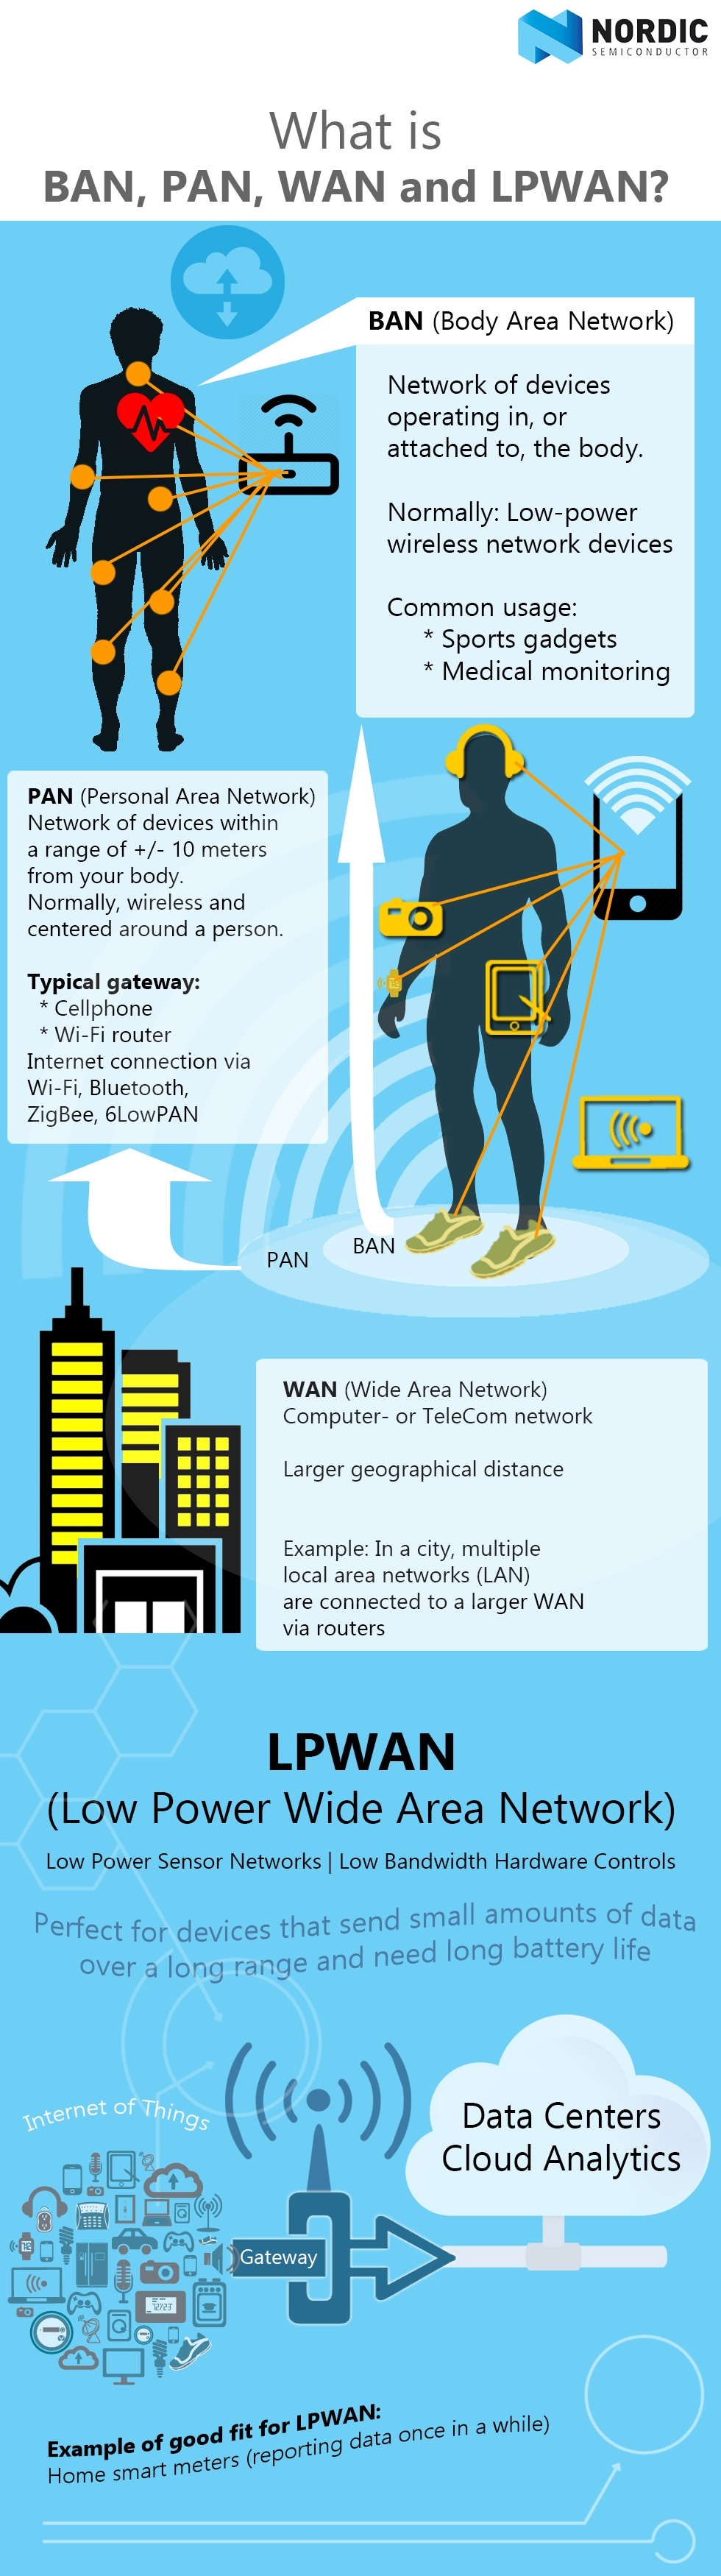 011-What-is-PAN-BAN-WAN-and-LPWAN-types-of-area-networks-nordic-semiconductor2.jpg